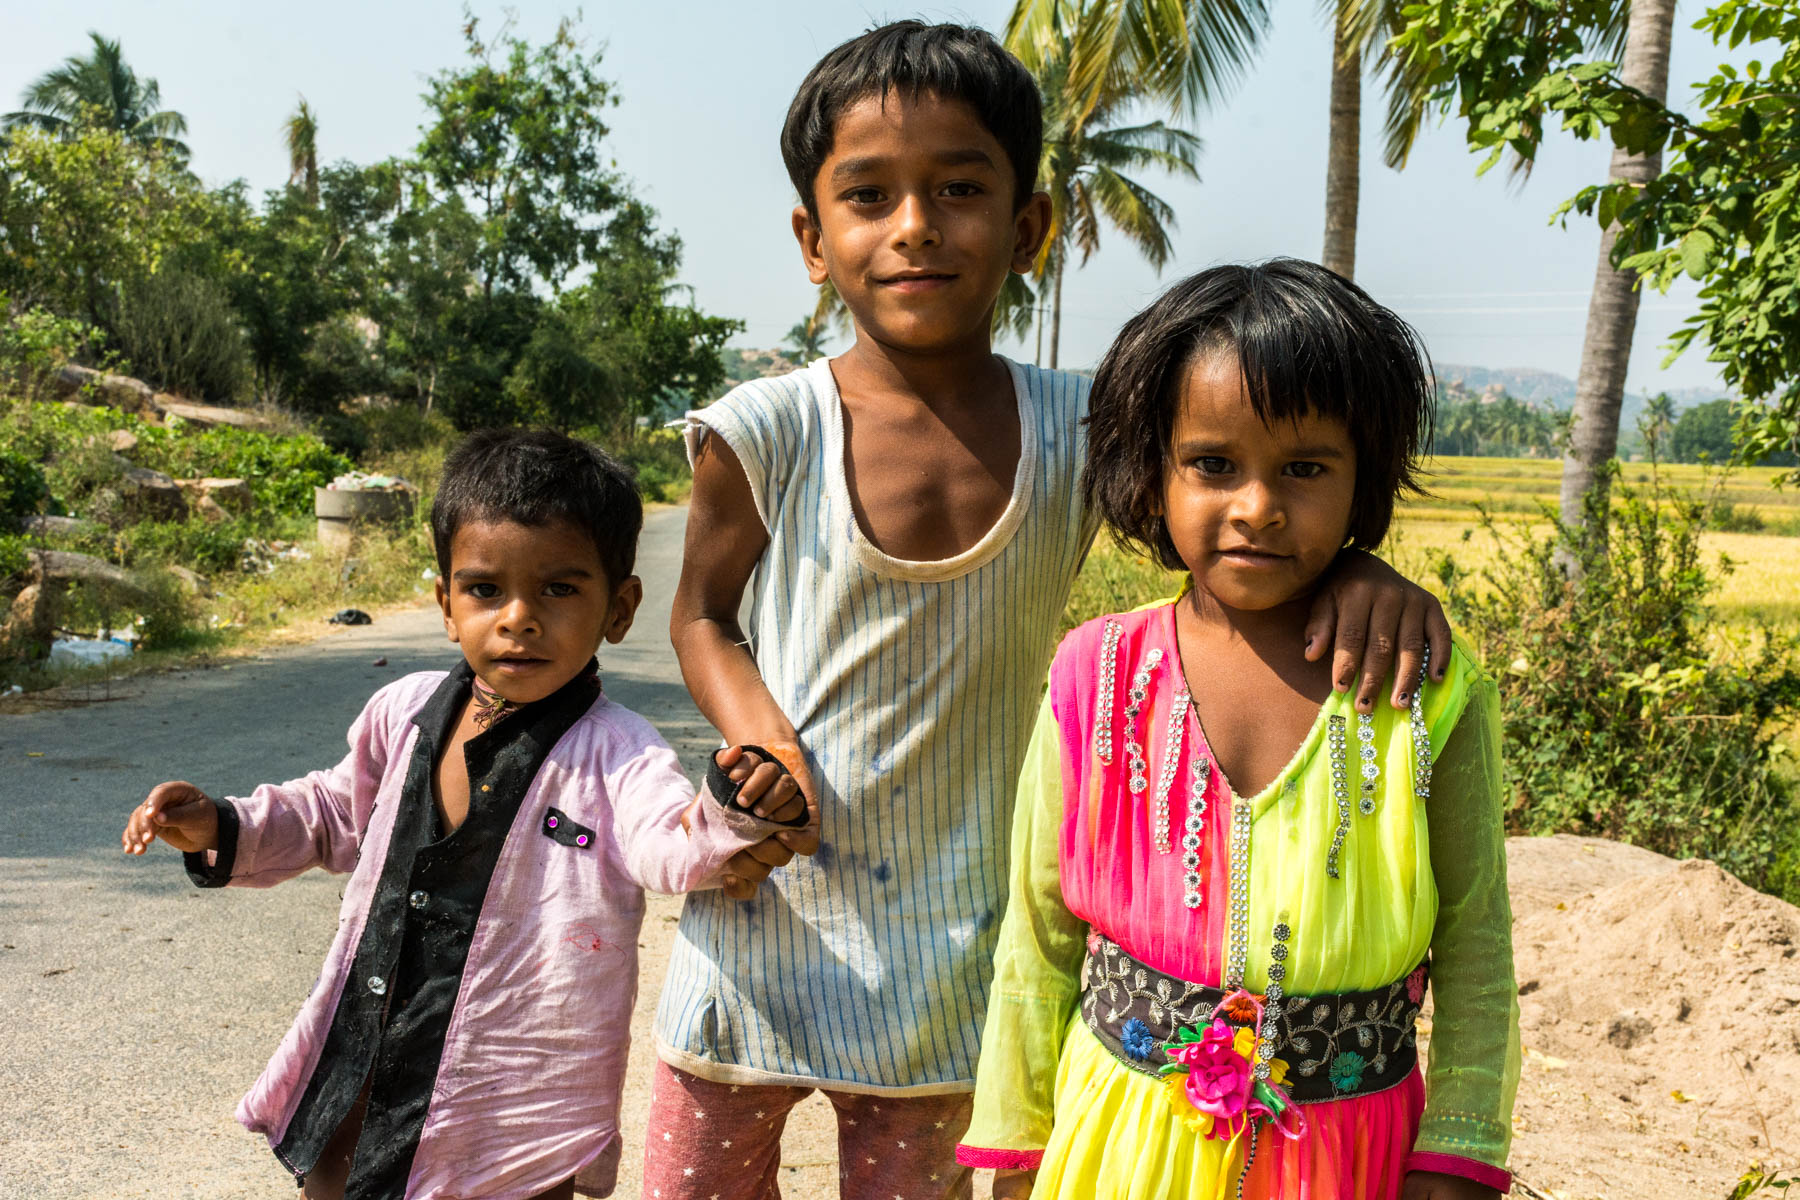 Children on the street in Hampi, India - Lost With Purpose